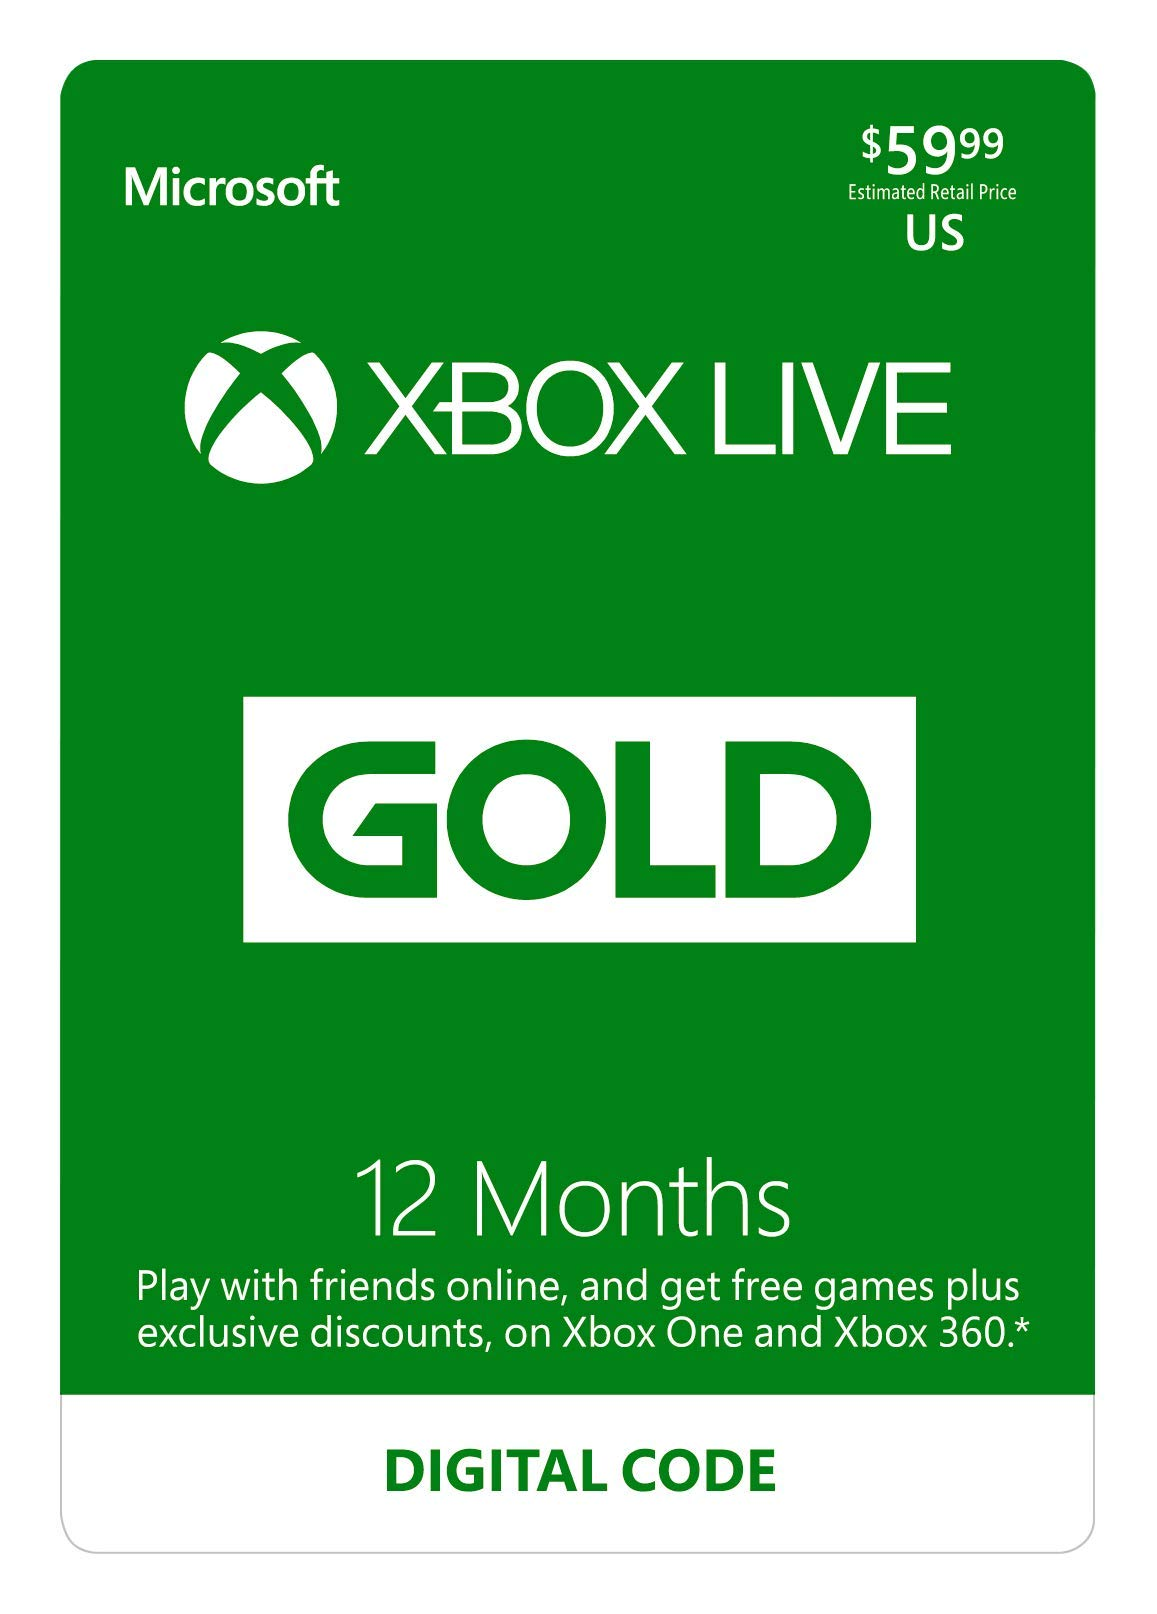 Xbox Live Gold: 12 Month Membership [Digital Code] by Microsoft (Image #1)